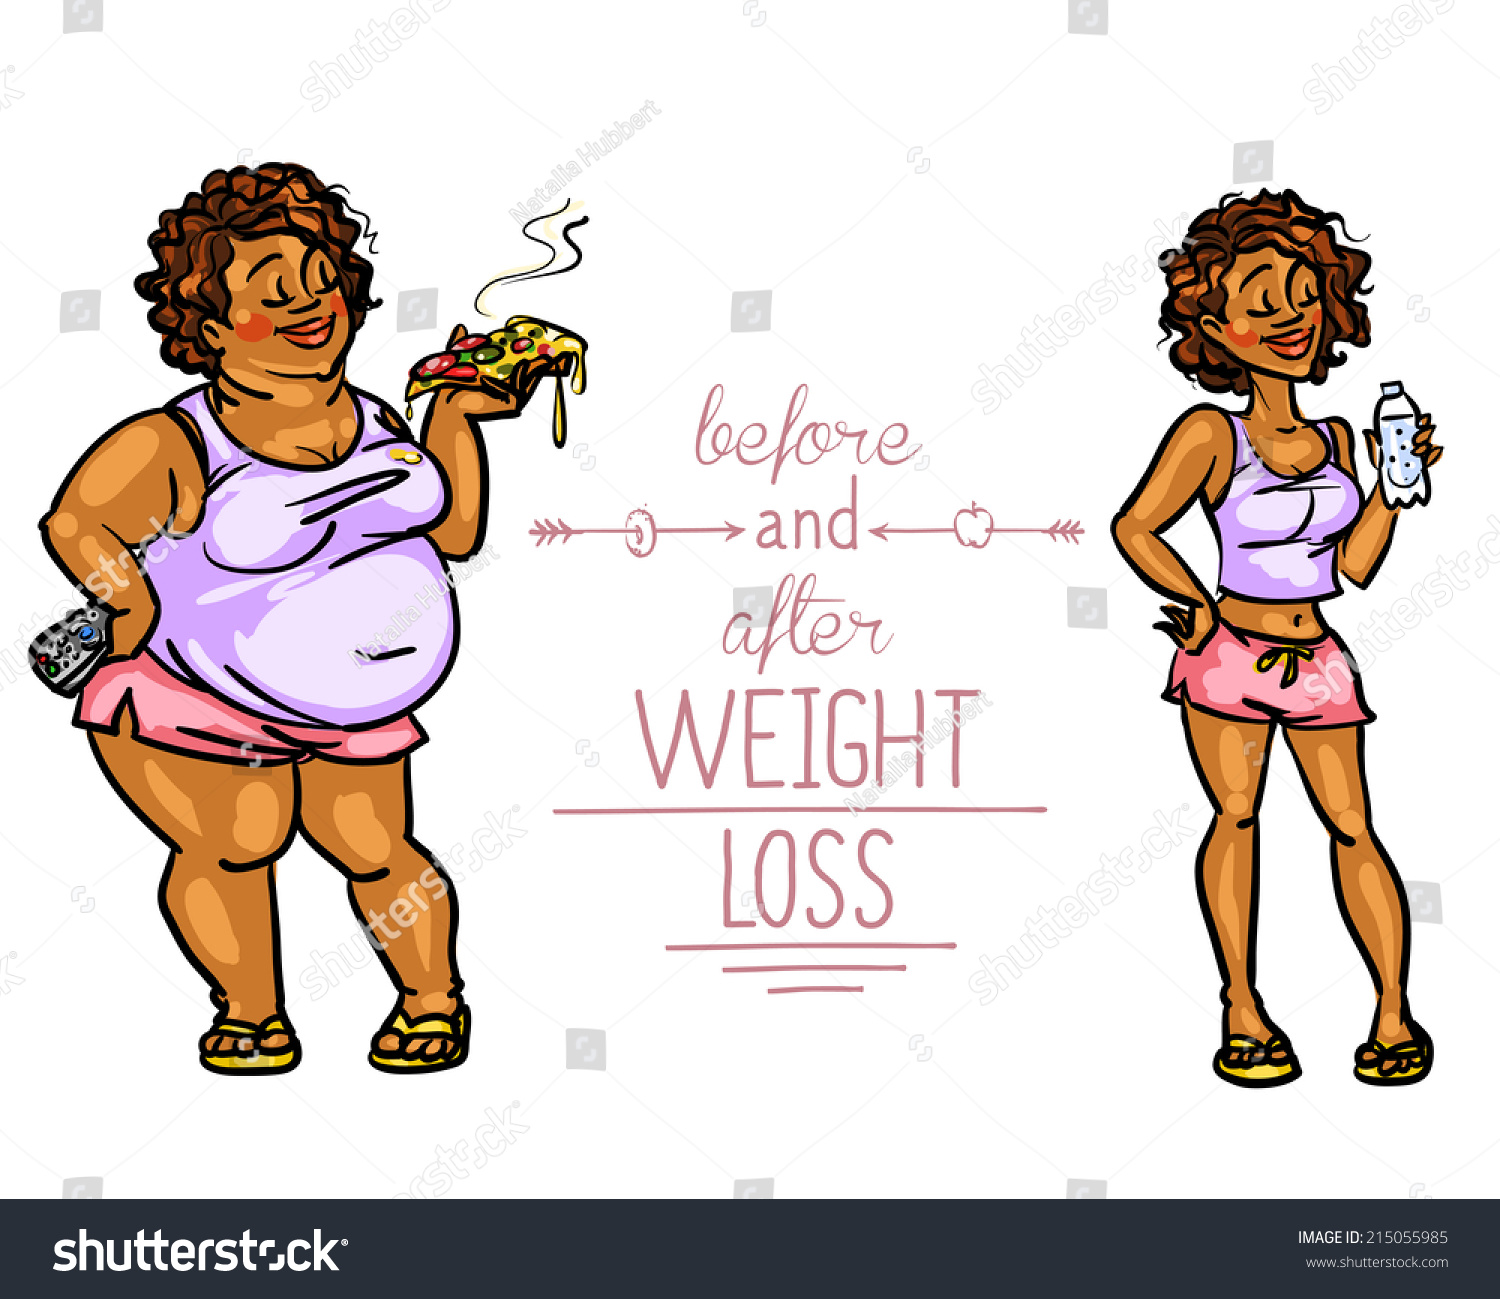 Woman Before After Weight Loss Cartoon Stock Vector Royalty Free 215055985